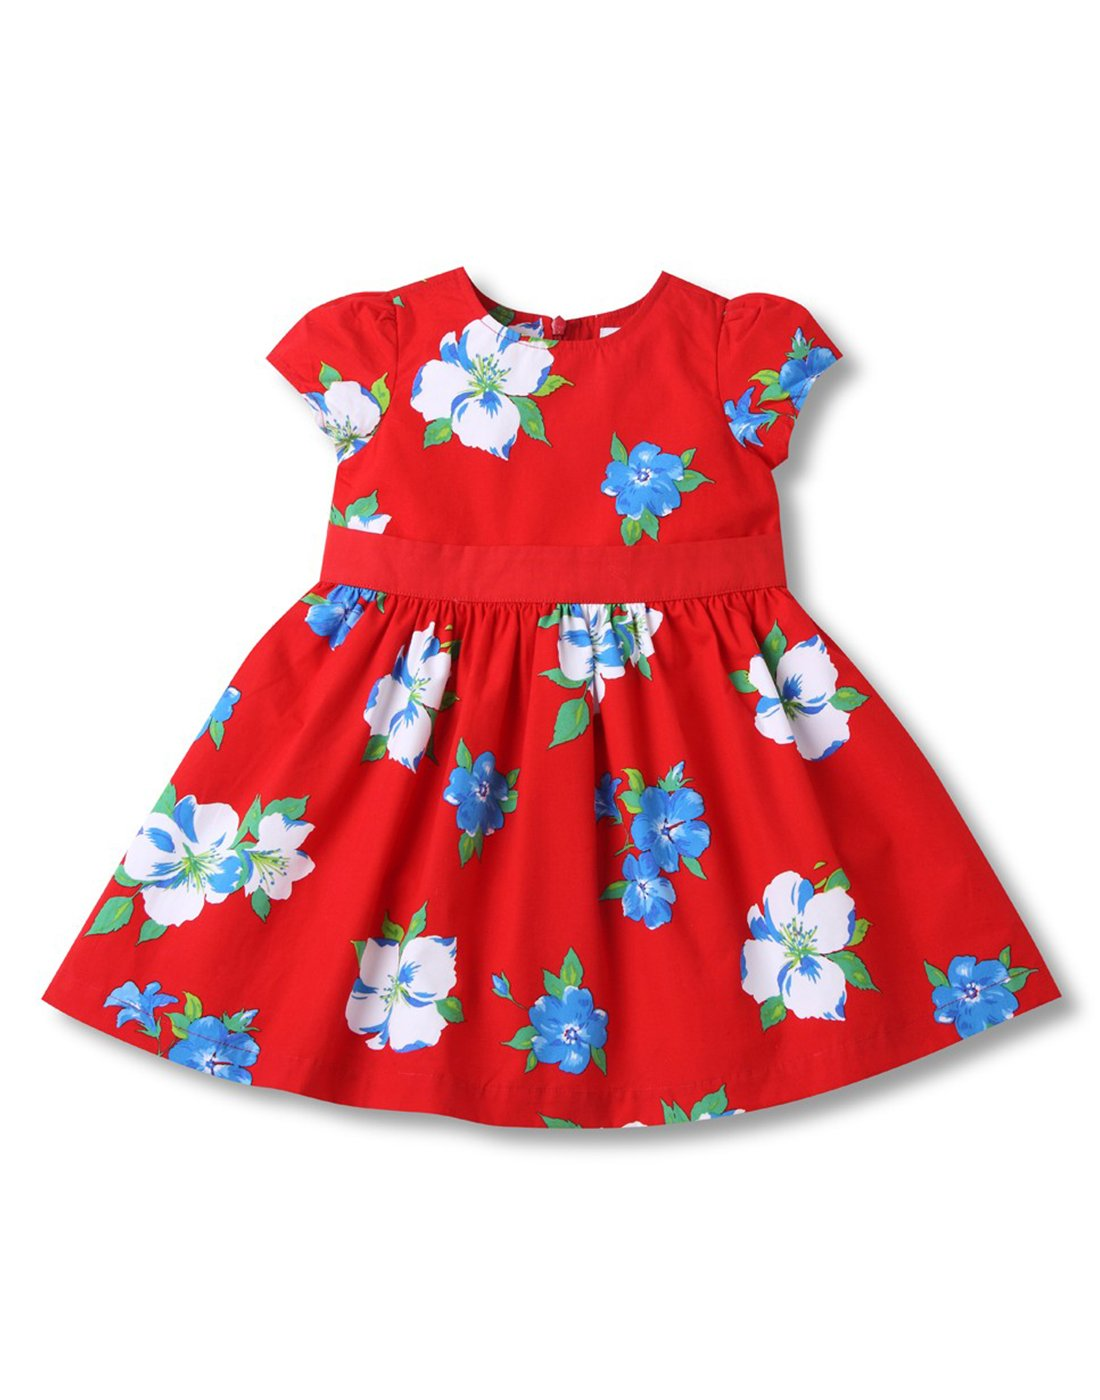 Red & Blue Floral Dress